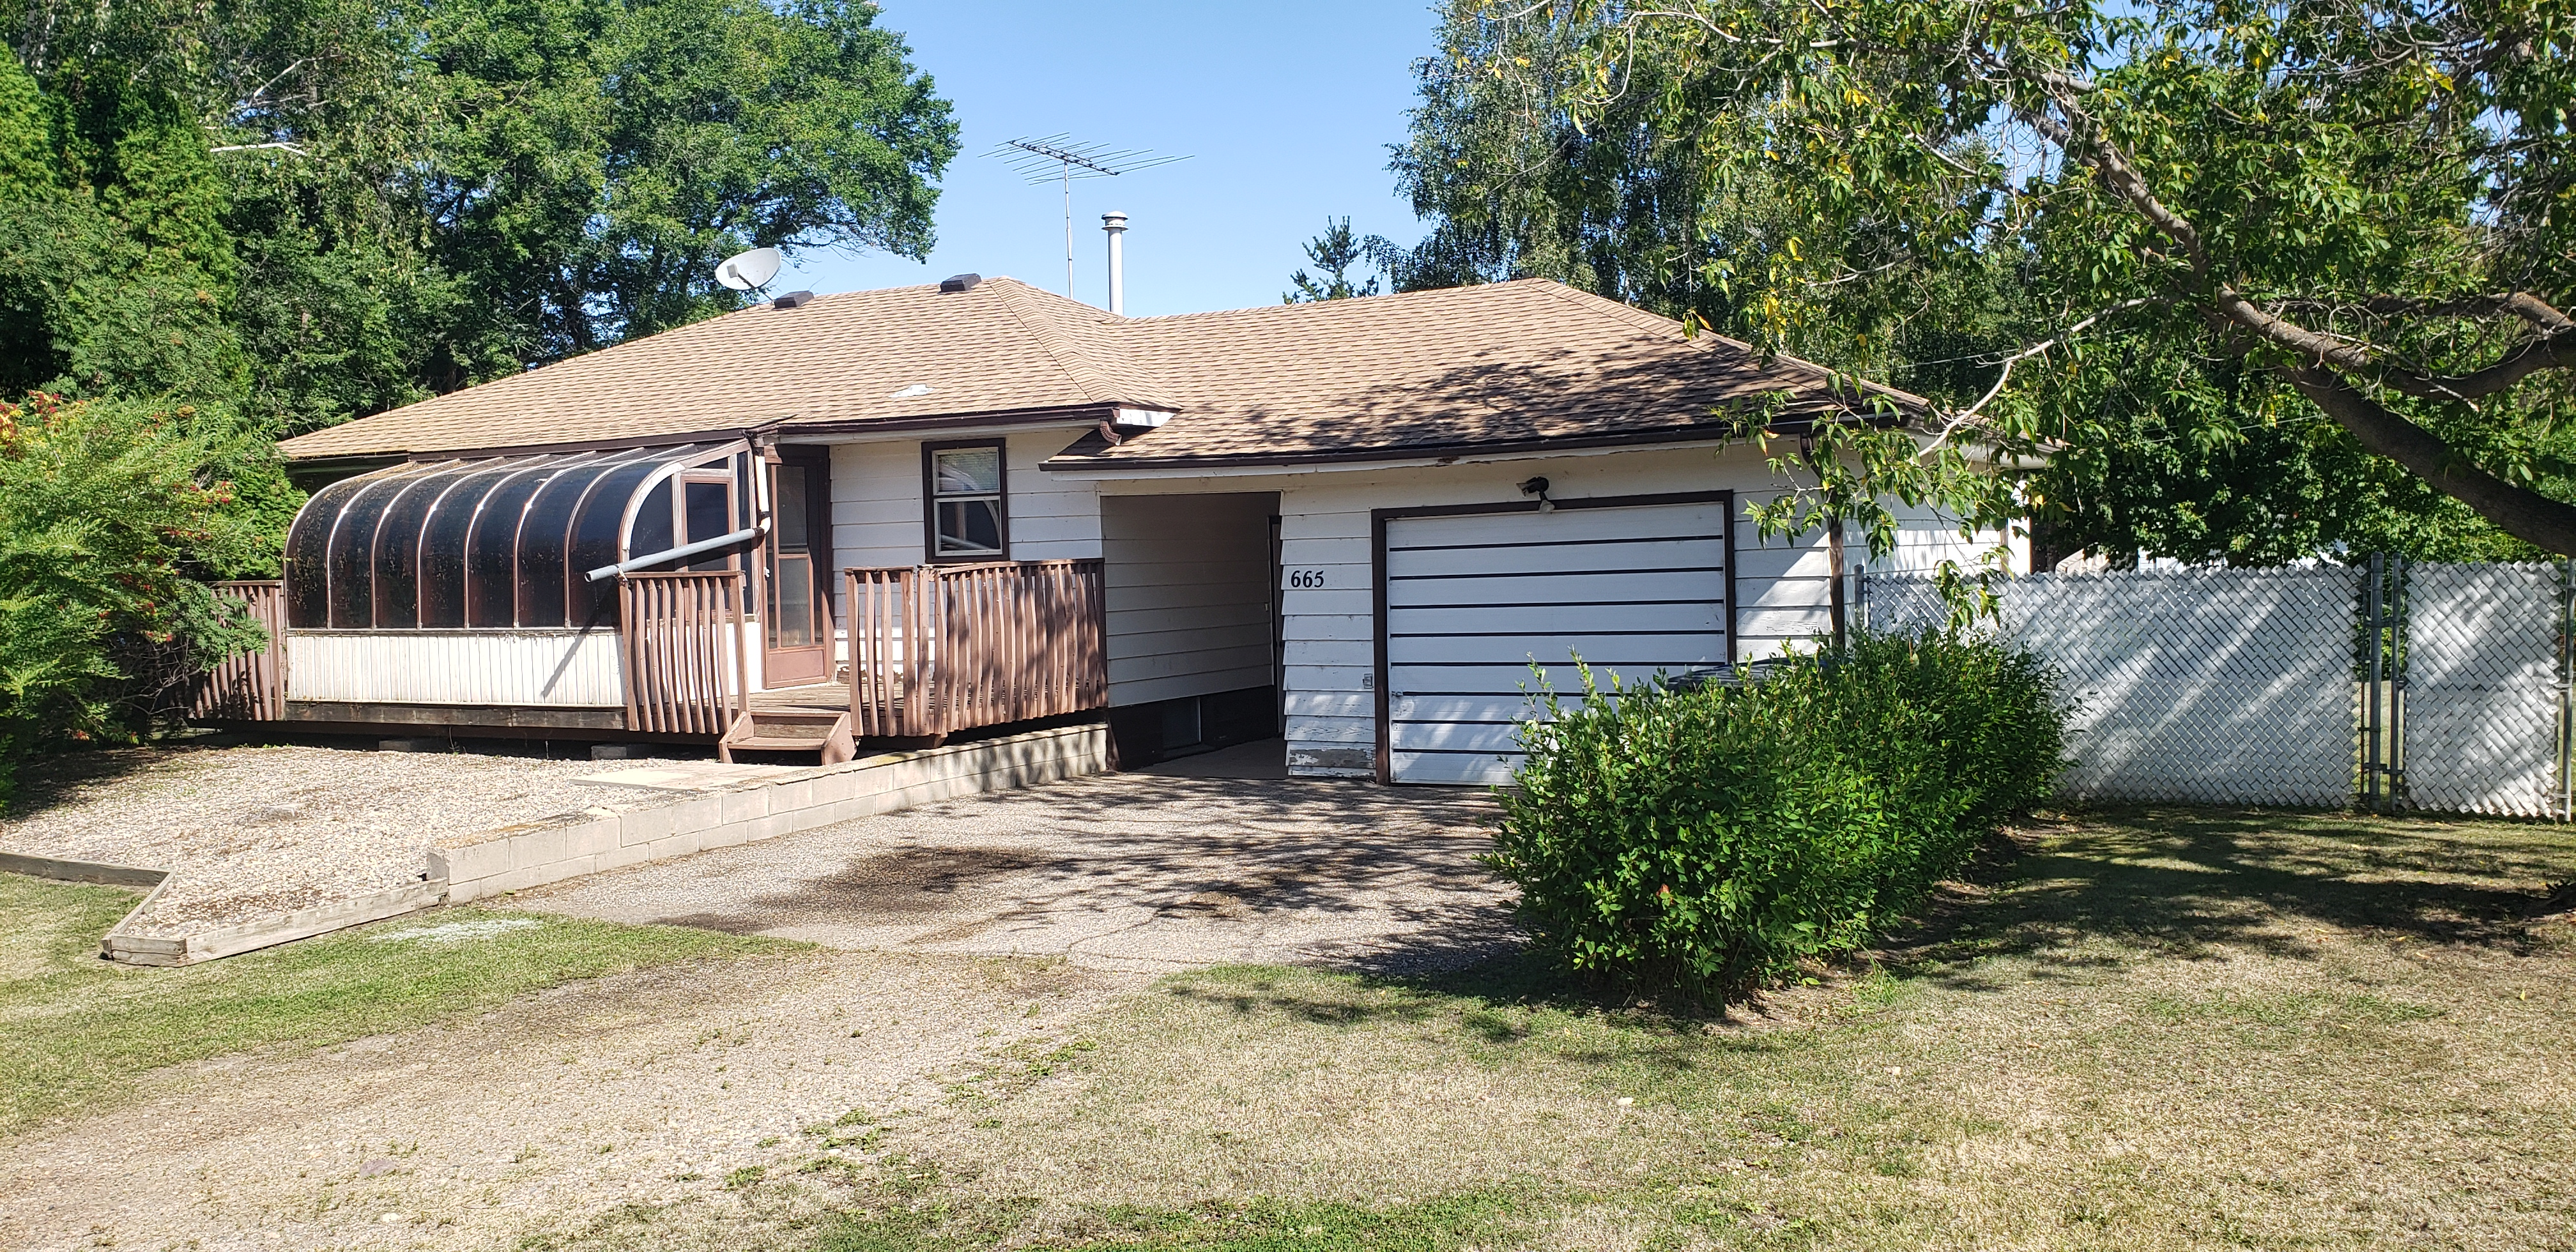 SOLD! 665 1st Avenue S   Duck Lake